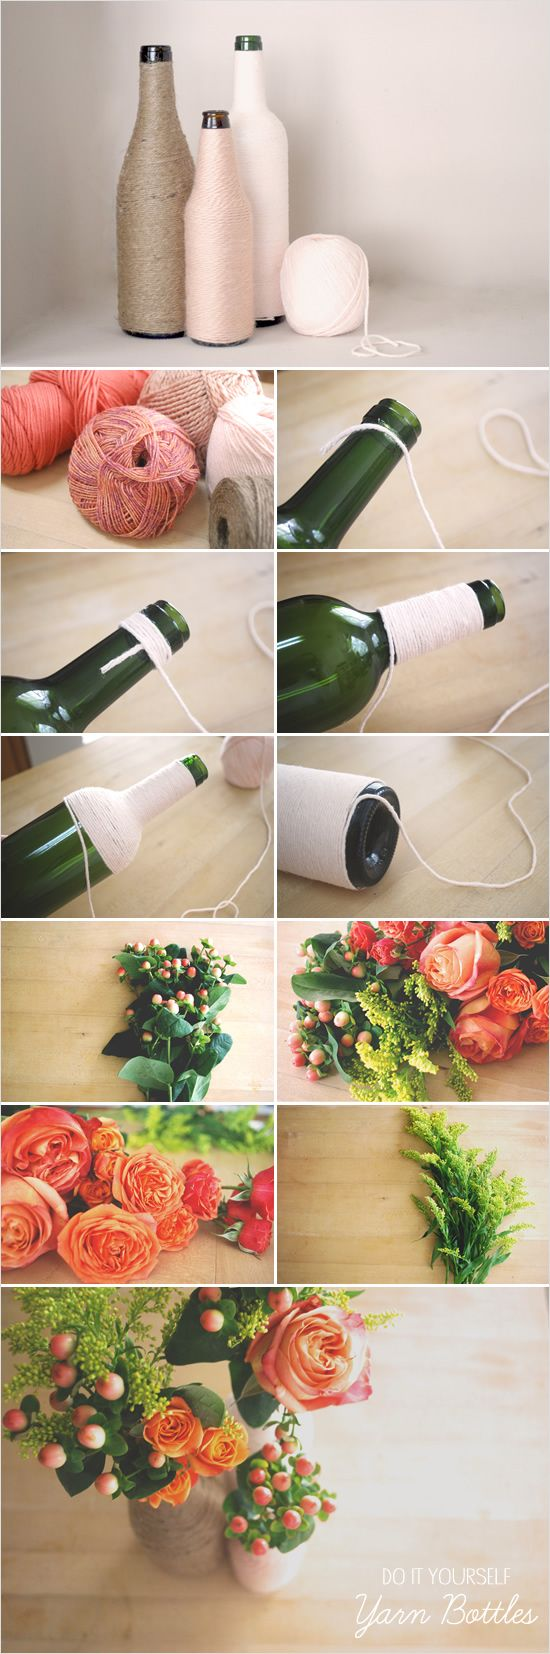 DIY Yarn Wrapped Bottles -  #diy